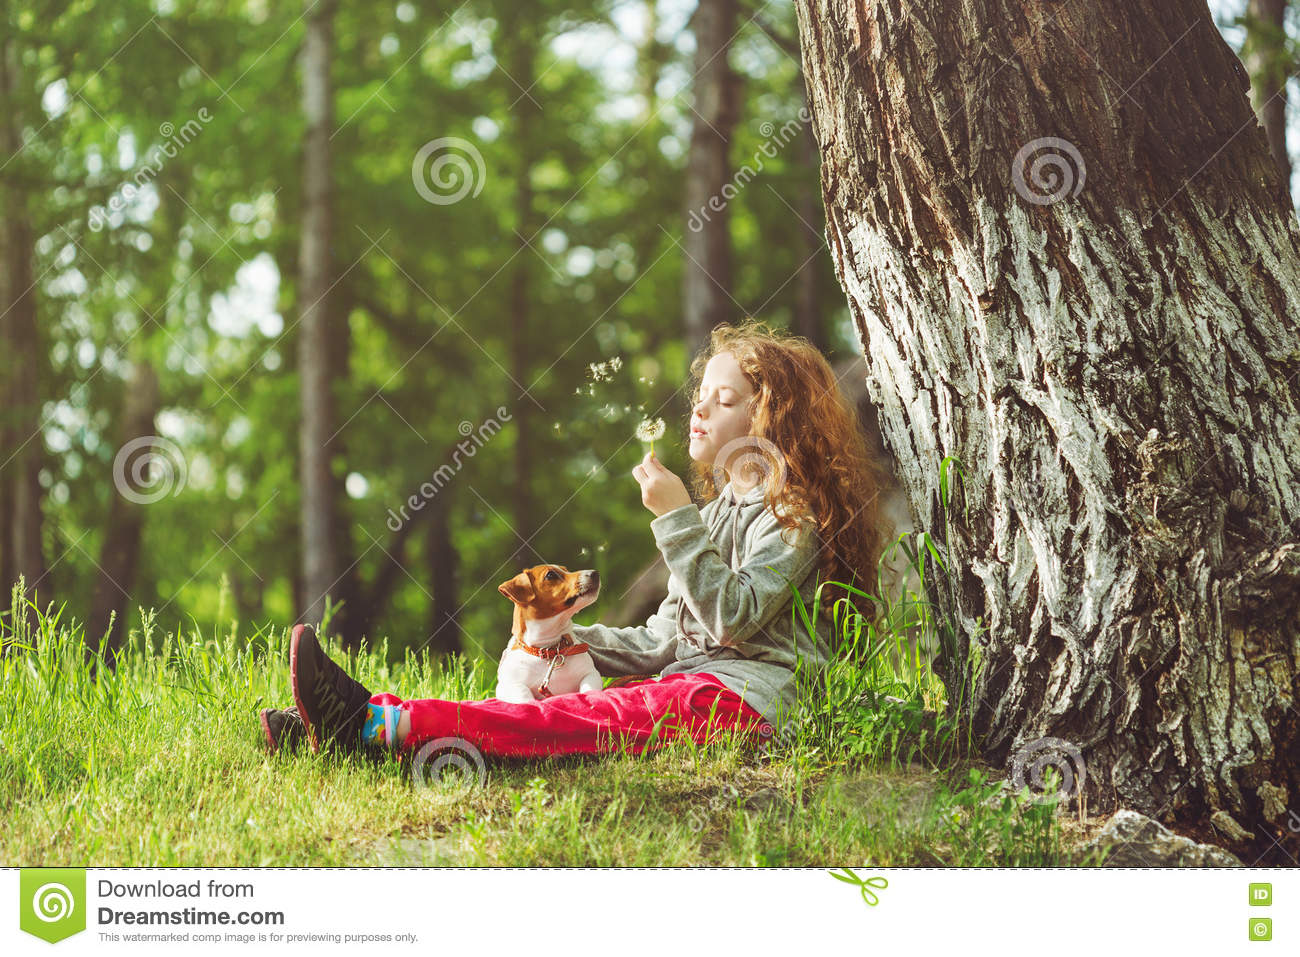 Child resting in a park under a large tree.